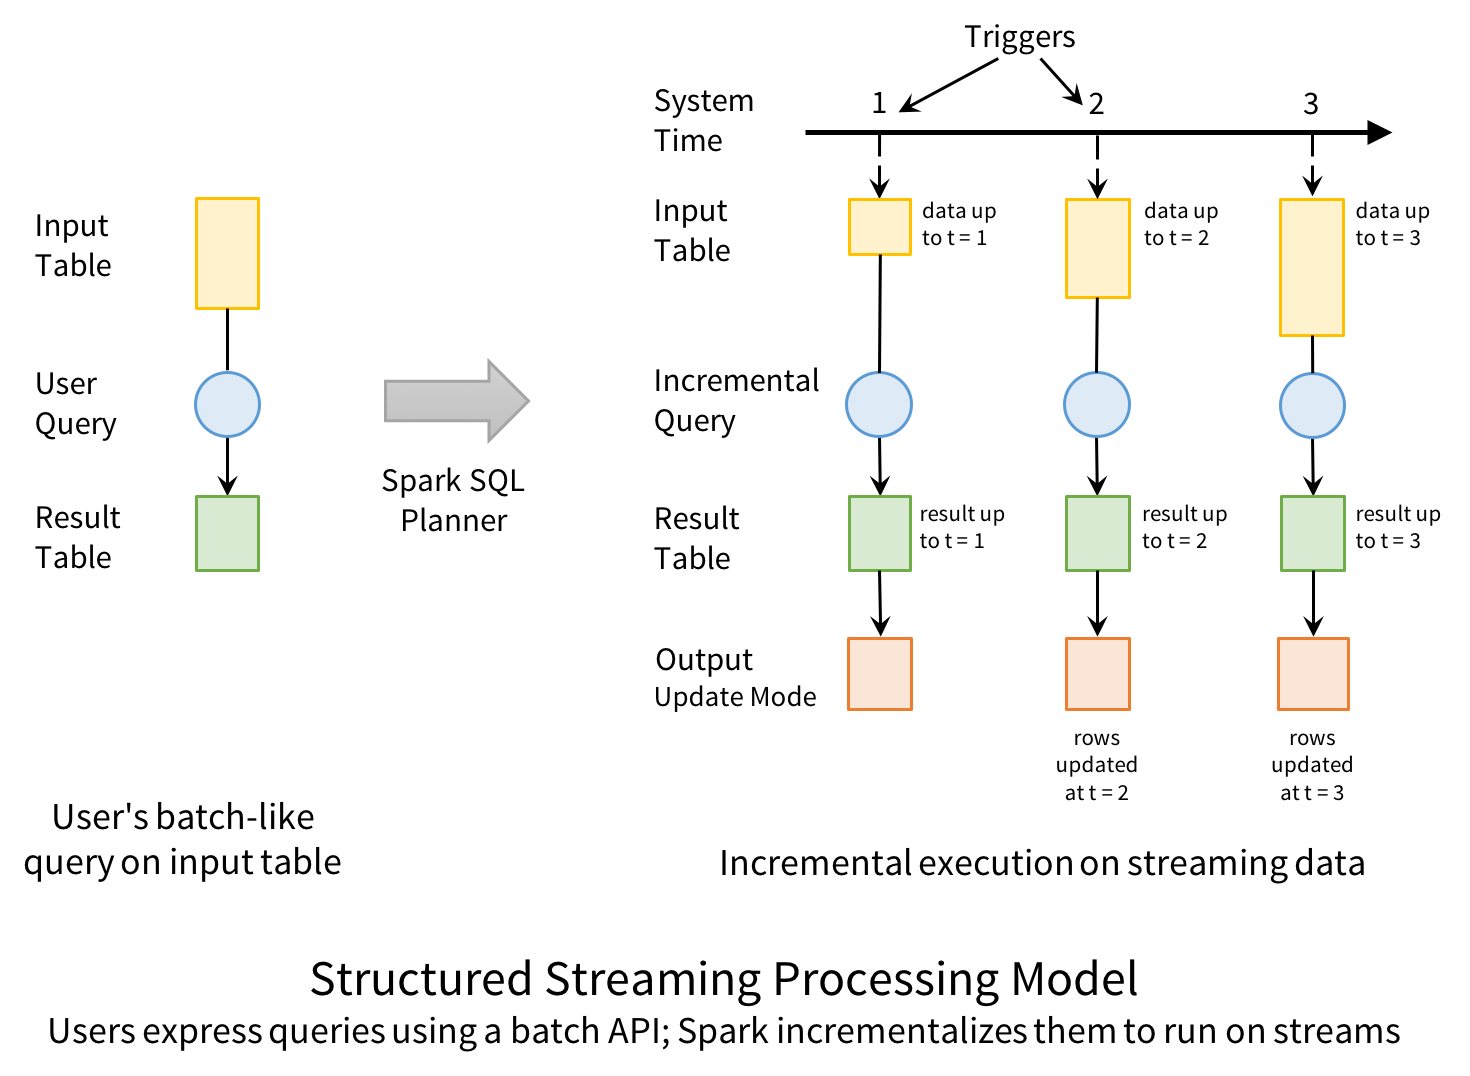 Spark Structured Streaming - The Databricks Blog